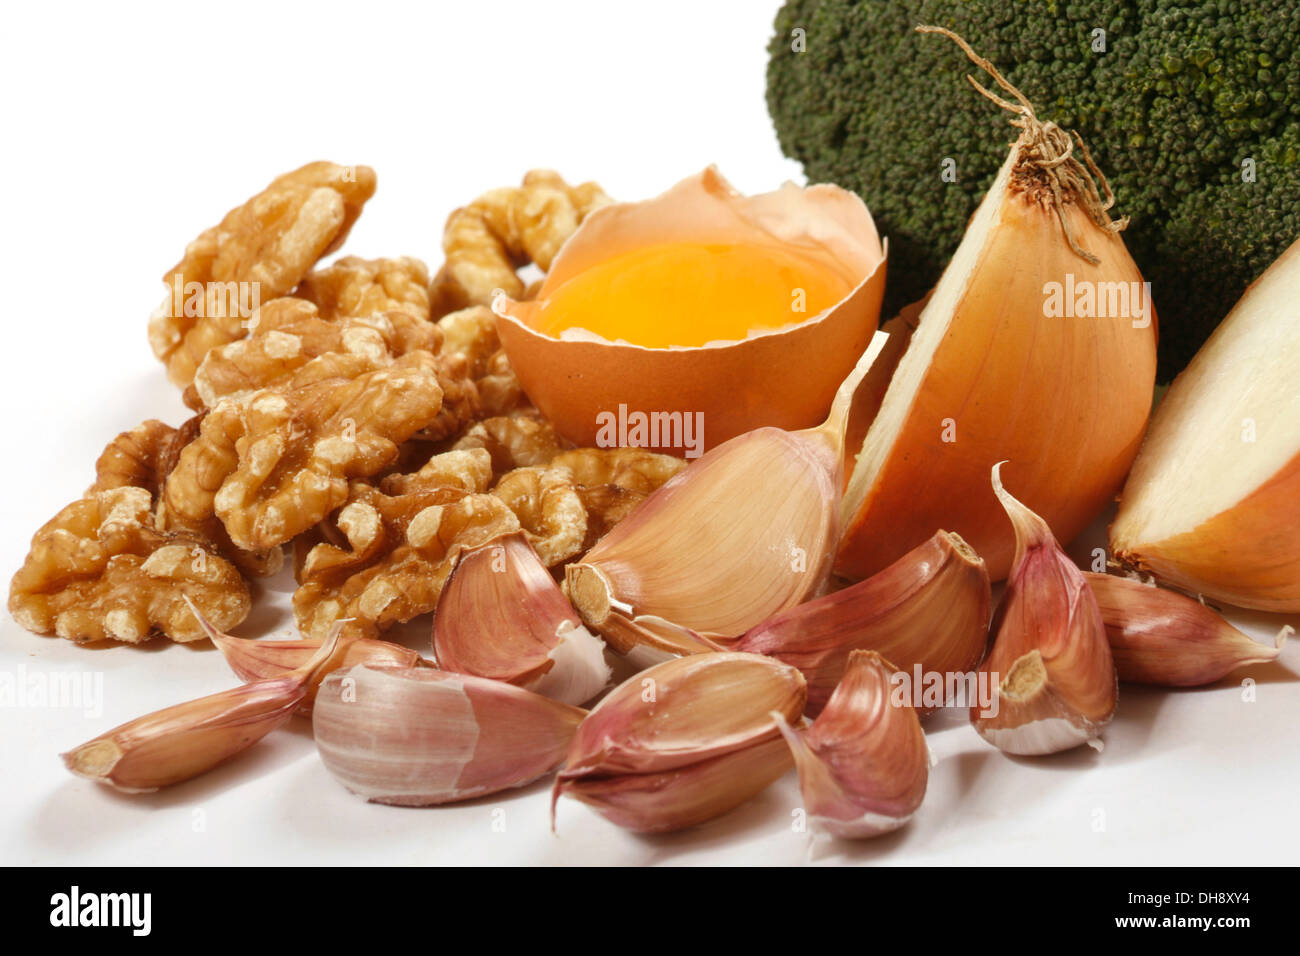 Sulfur Rich Foods Stock Photos & Sulfur Rich Foods Stock